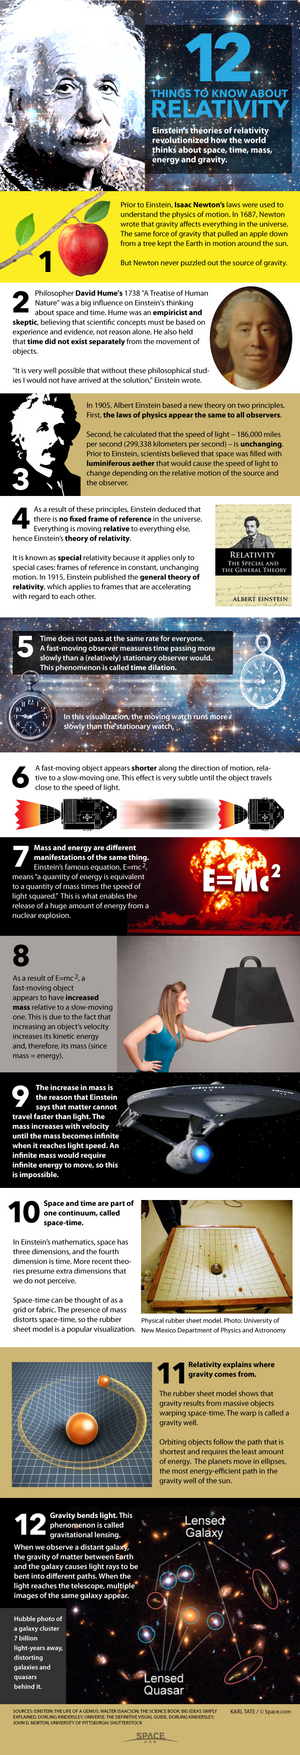 """2015 marks 100 years since the publication of Albert Einstein's General Theory of Relativity. <a href=""""http://www.space.com/28738-einstein-theory-of-relativity-explained-infgraphic.html"""">Learn the basics of Einstein's theory of relativity in our infographic here</a>."""